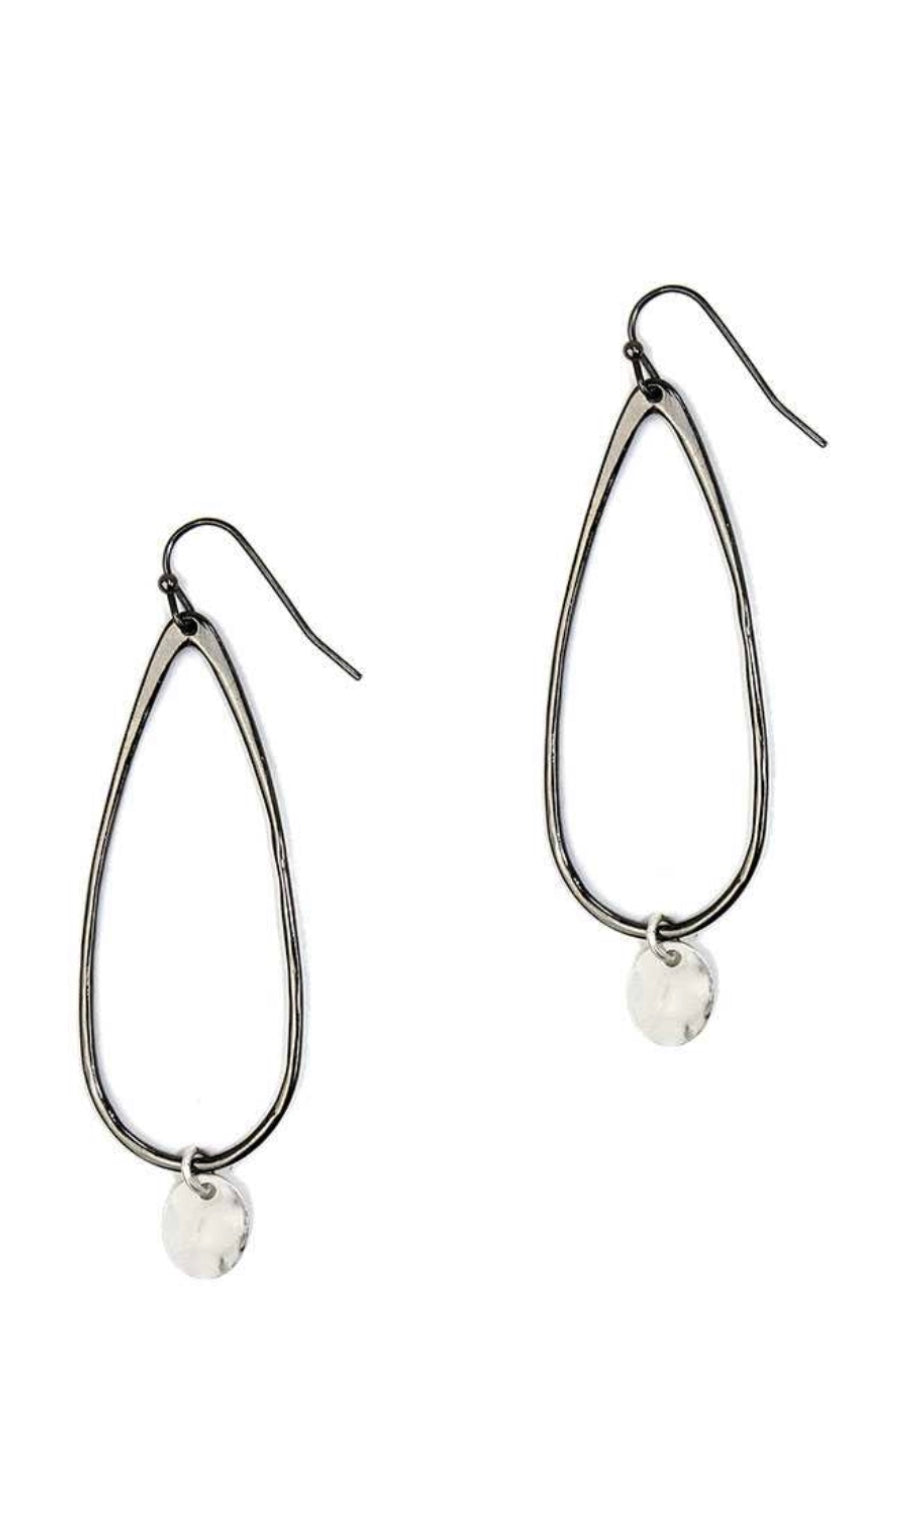 Teardrop Shape Coin Dangle Drop Earrings